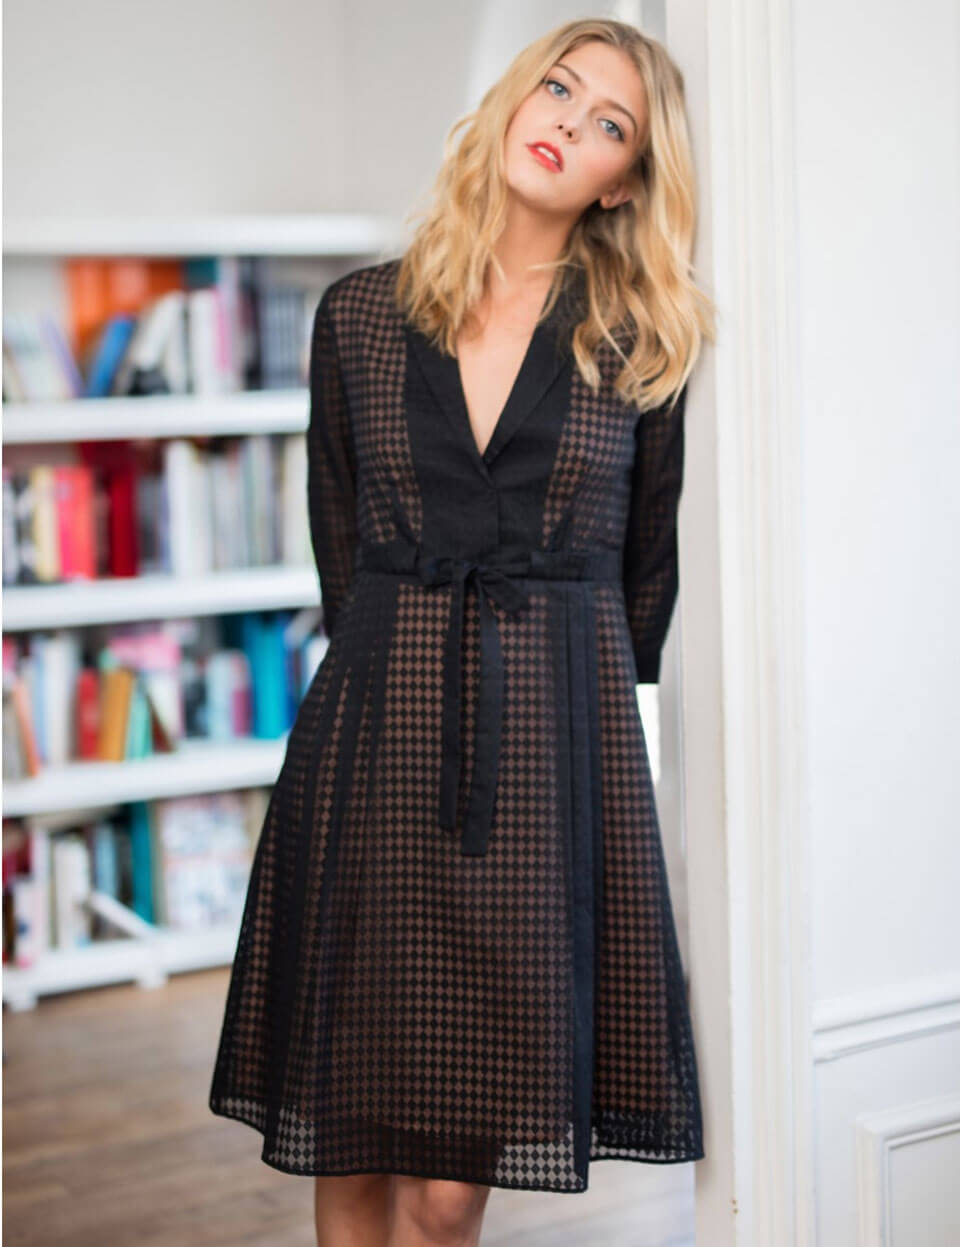 French fashion: Cocktail dress